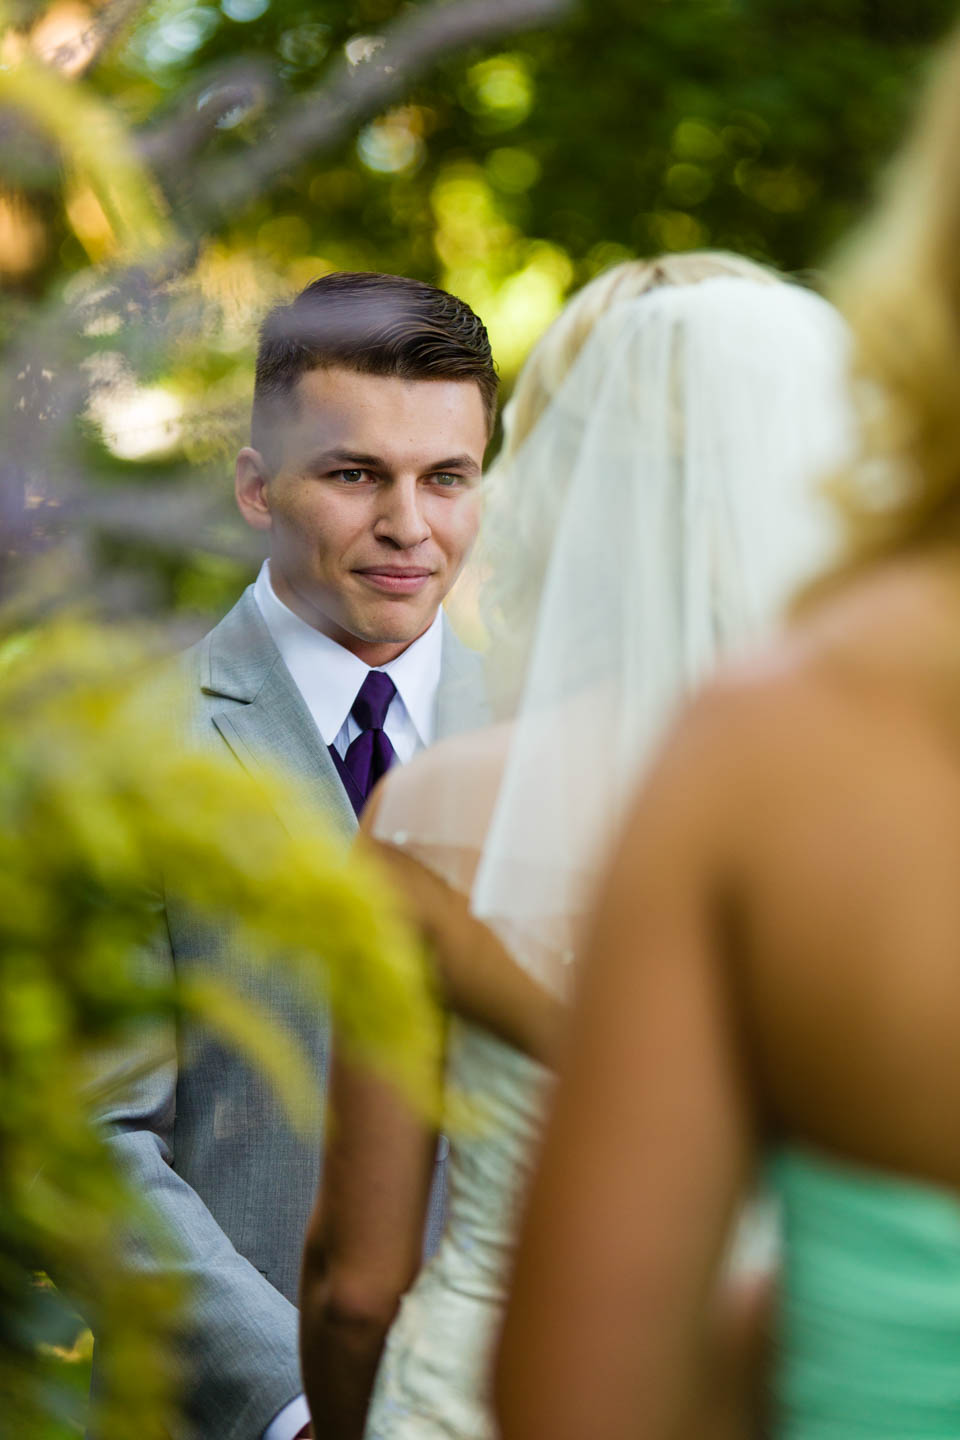 Groom looks at the bride